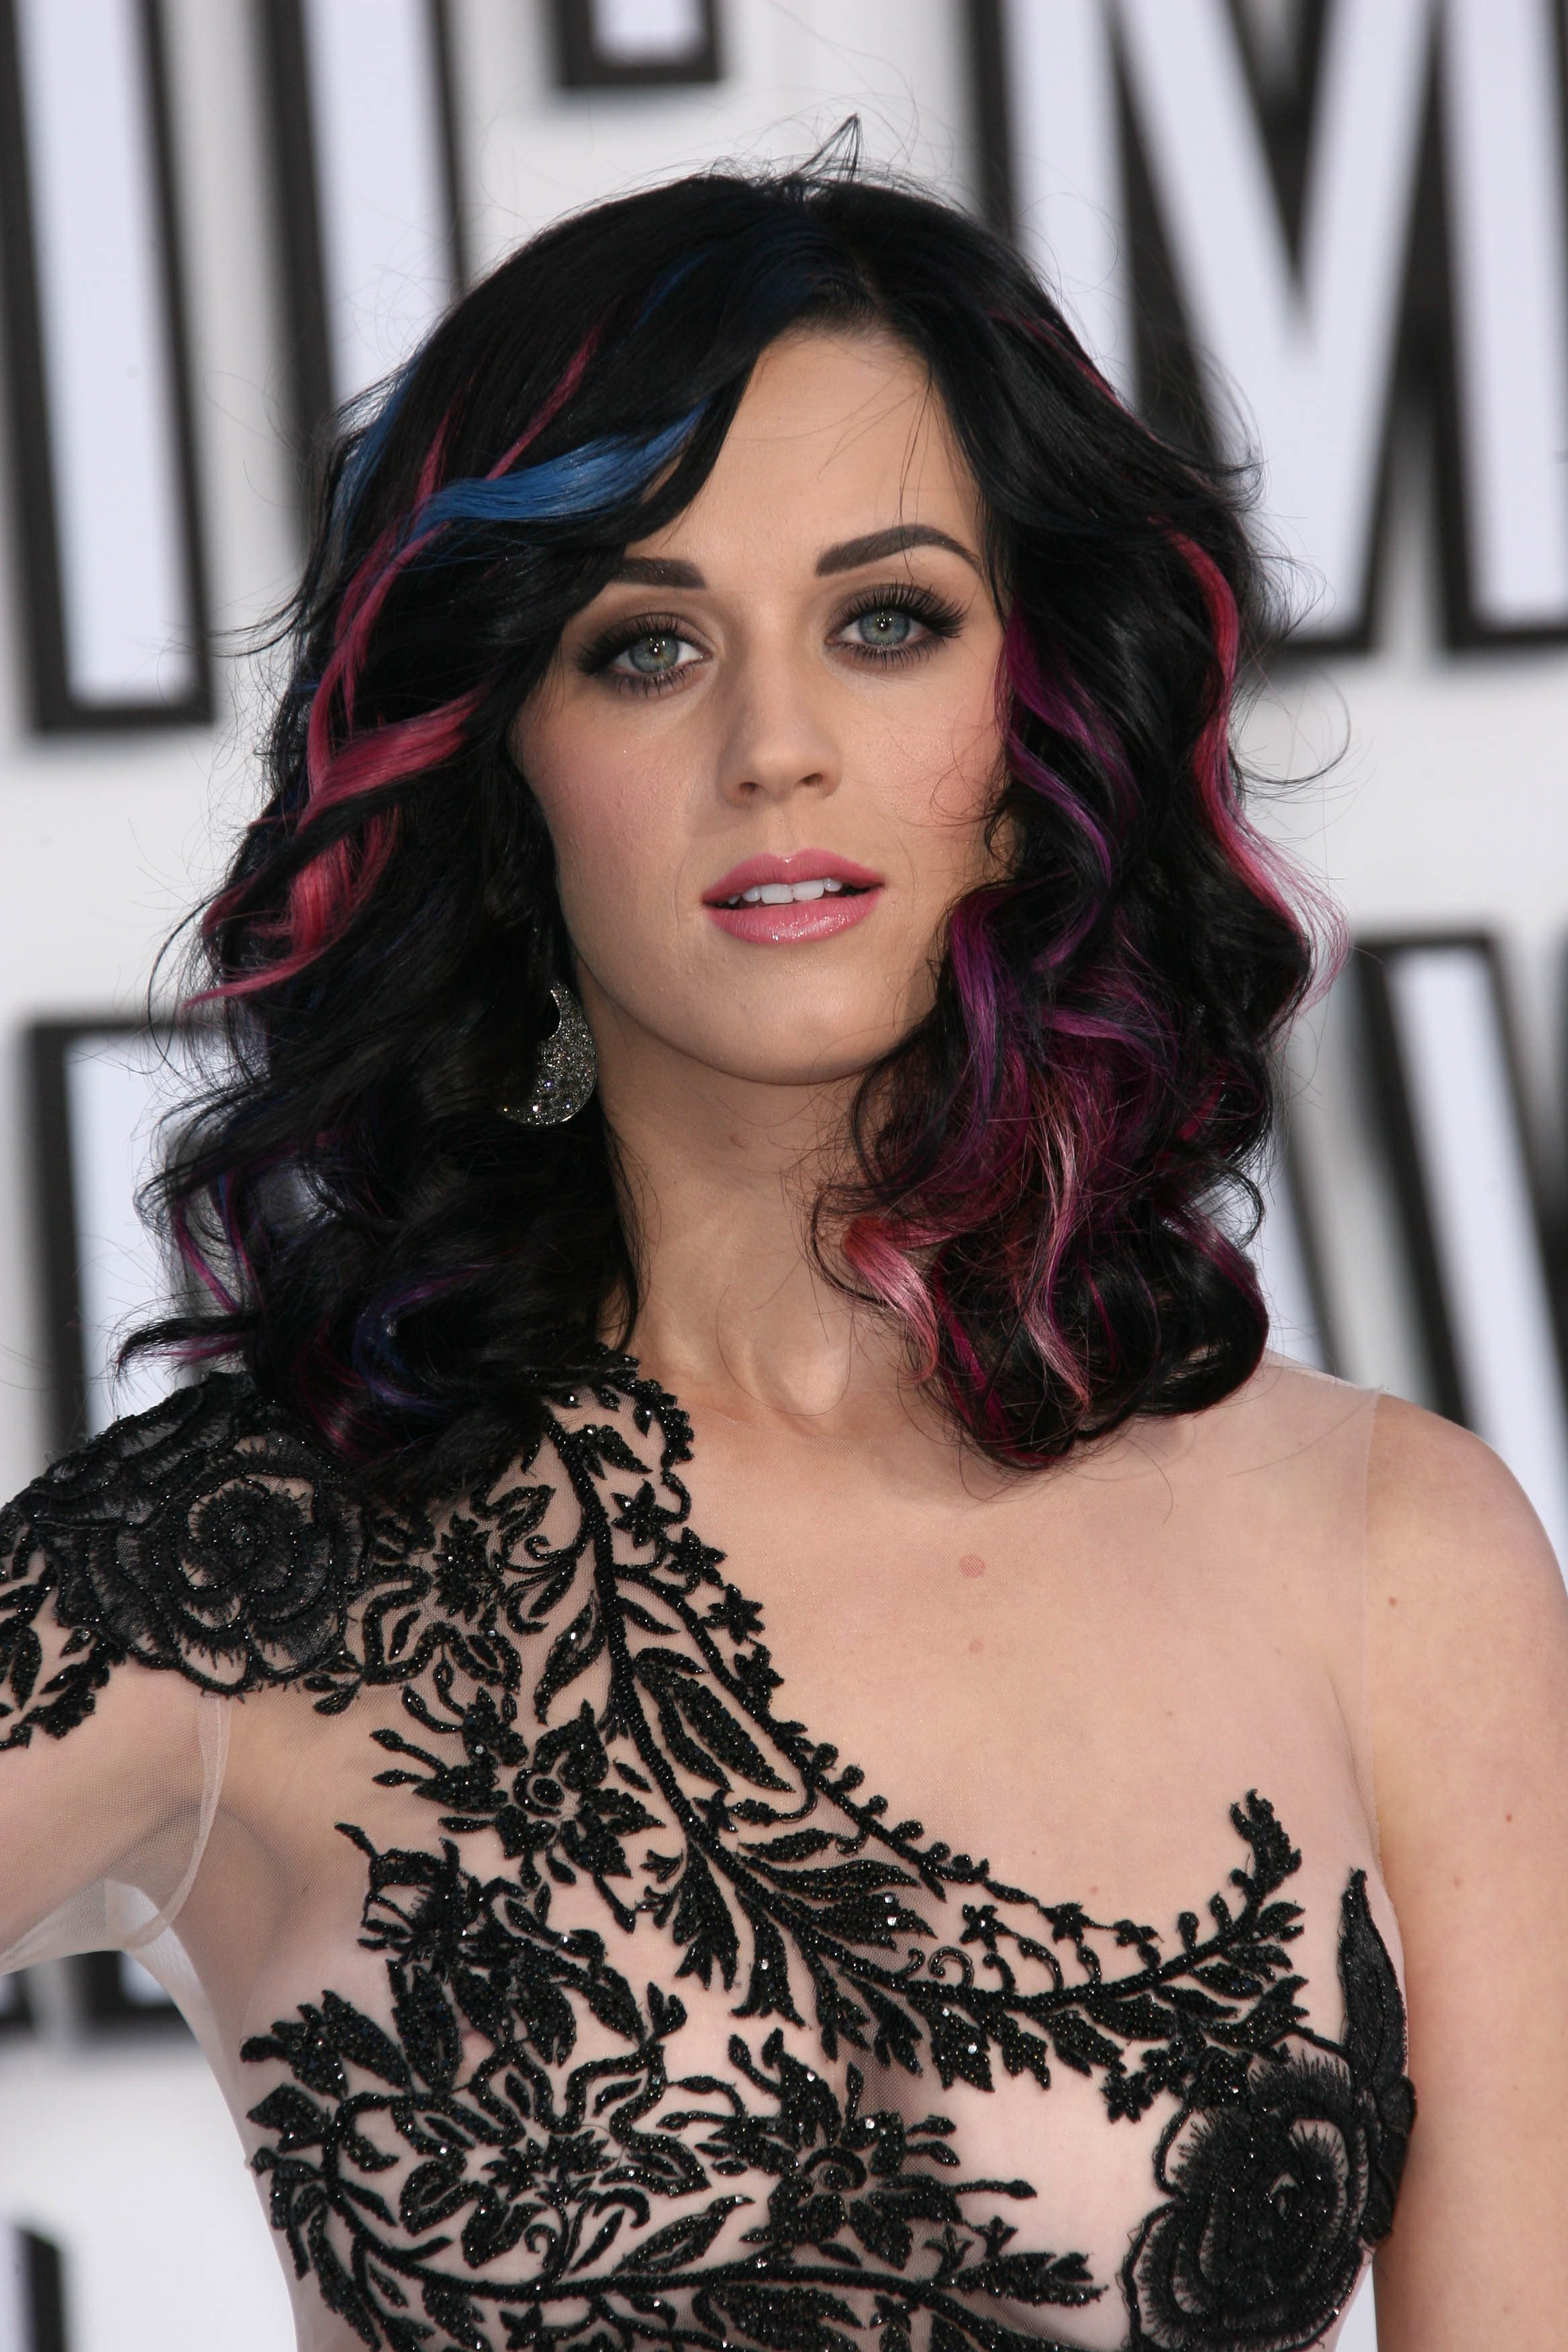 Katy Perry's Black Hair with Blue and Purple Highlights